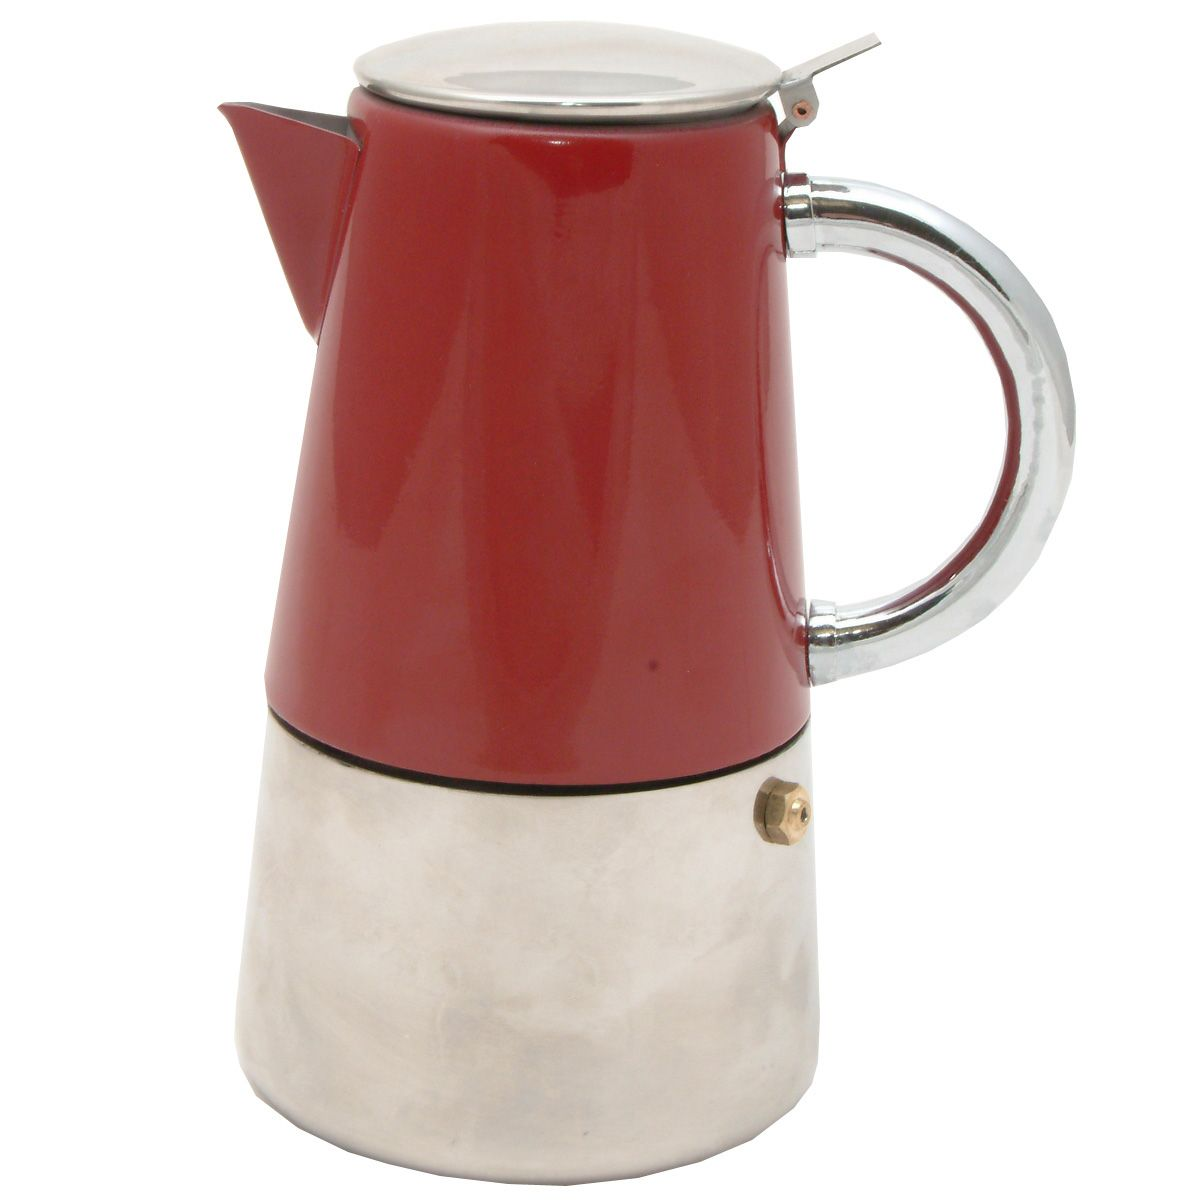 Novo Espresso Maker, Red